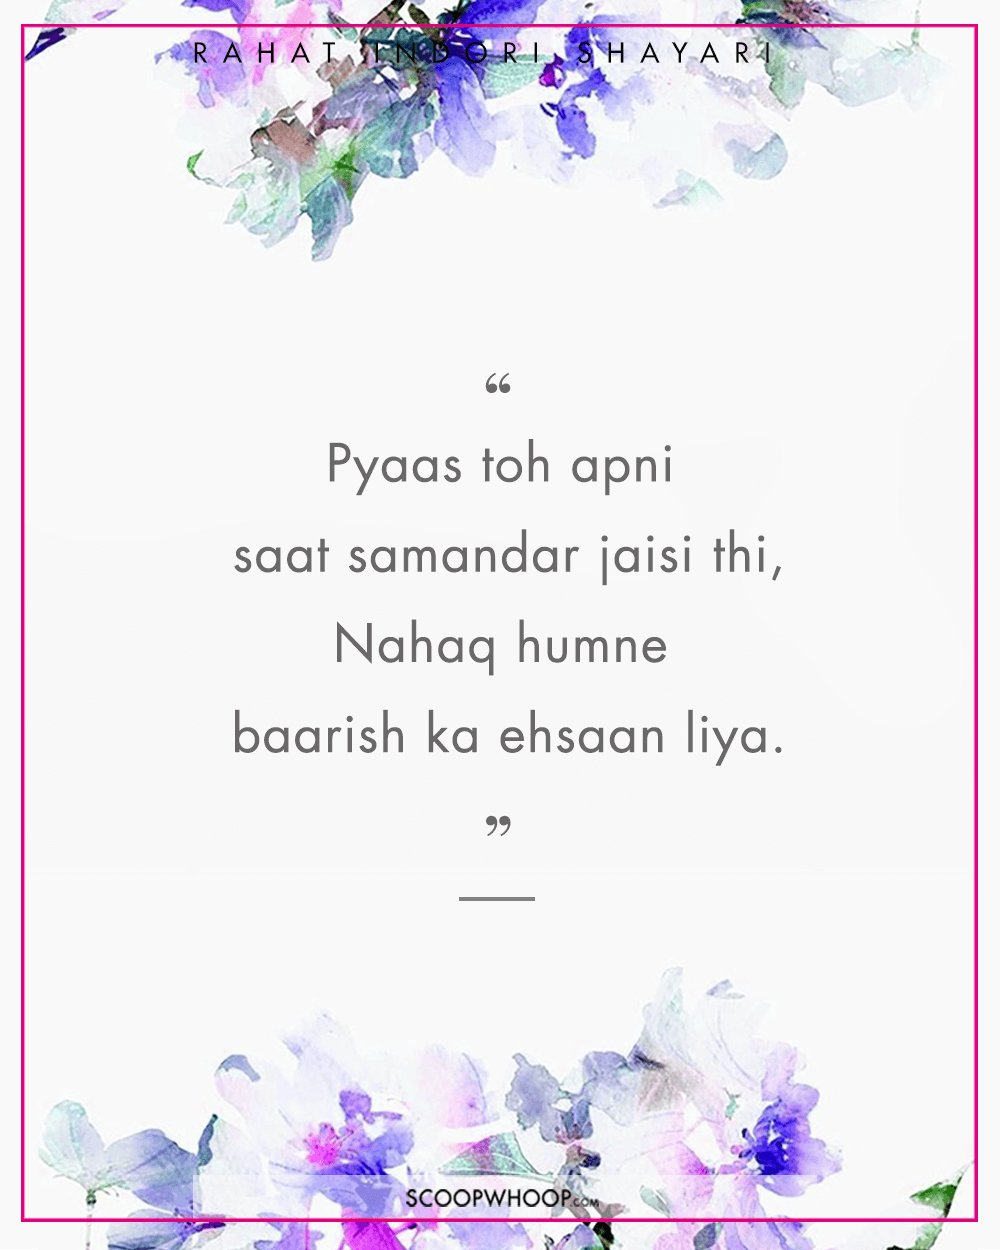 21 Rahat Indori Shayaris For The Times When You Could Do